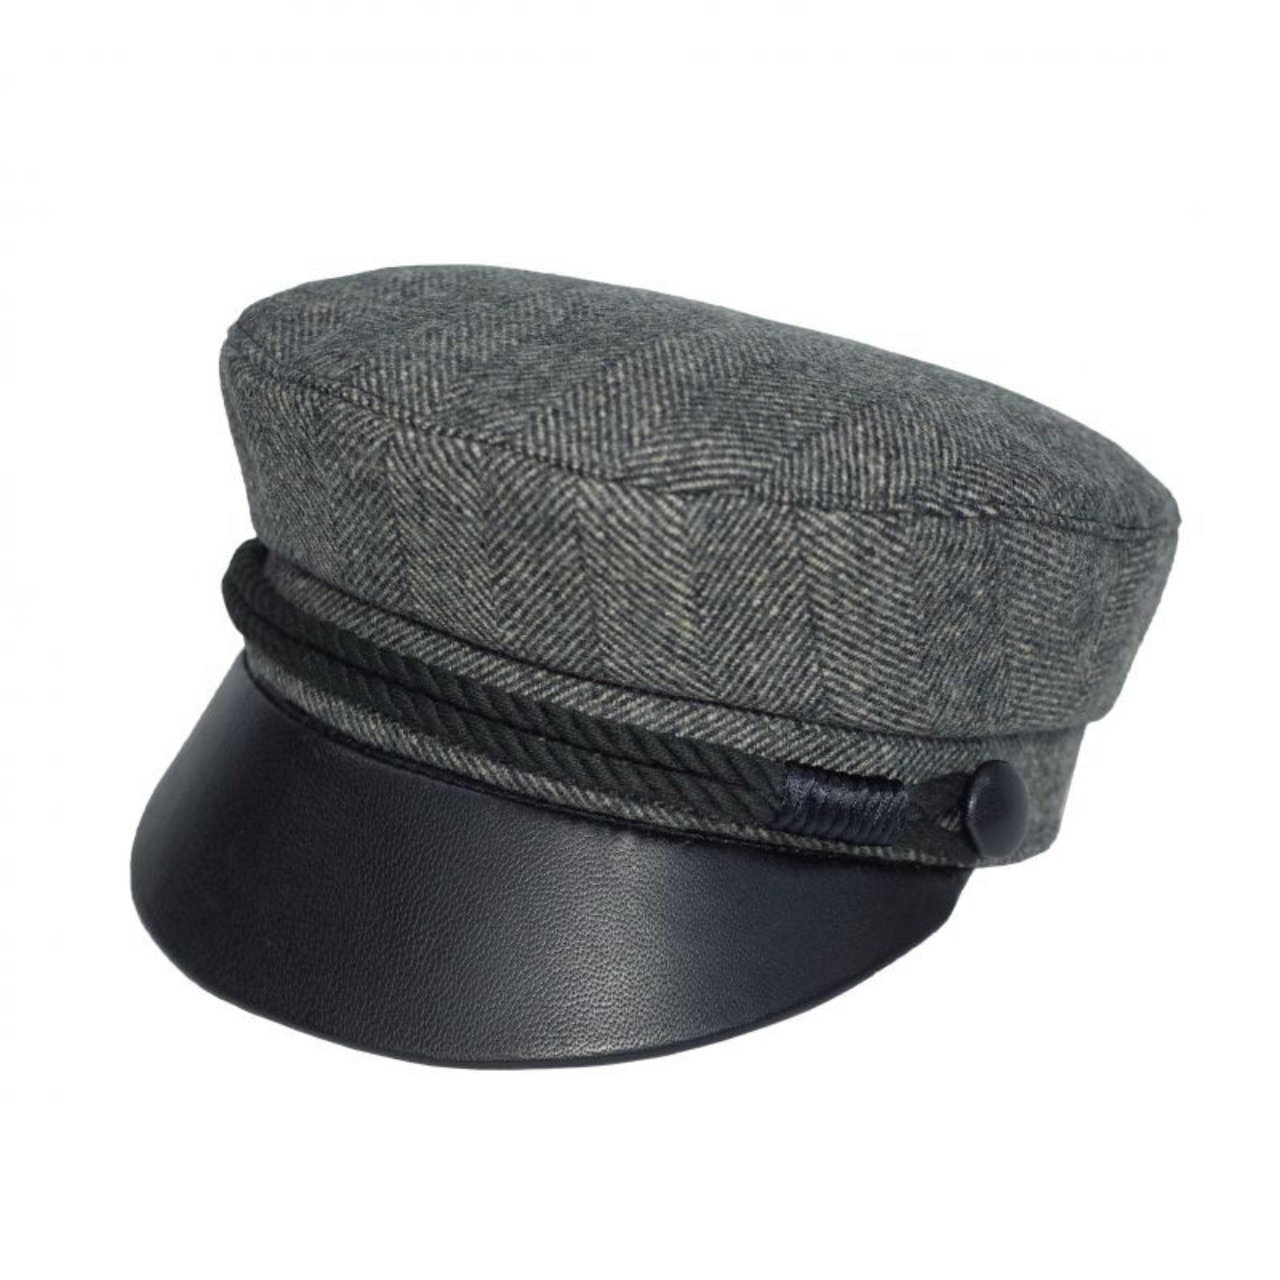 Original John | LIVERPOOL HAT - Tweed Grey [HTLH381]